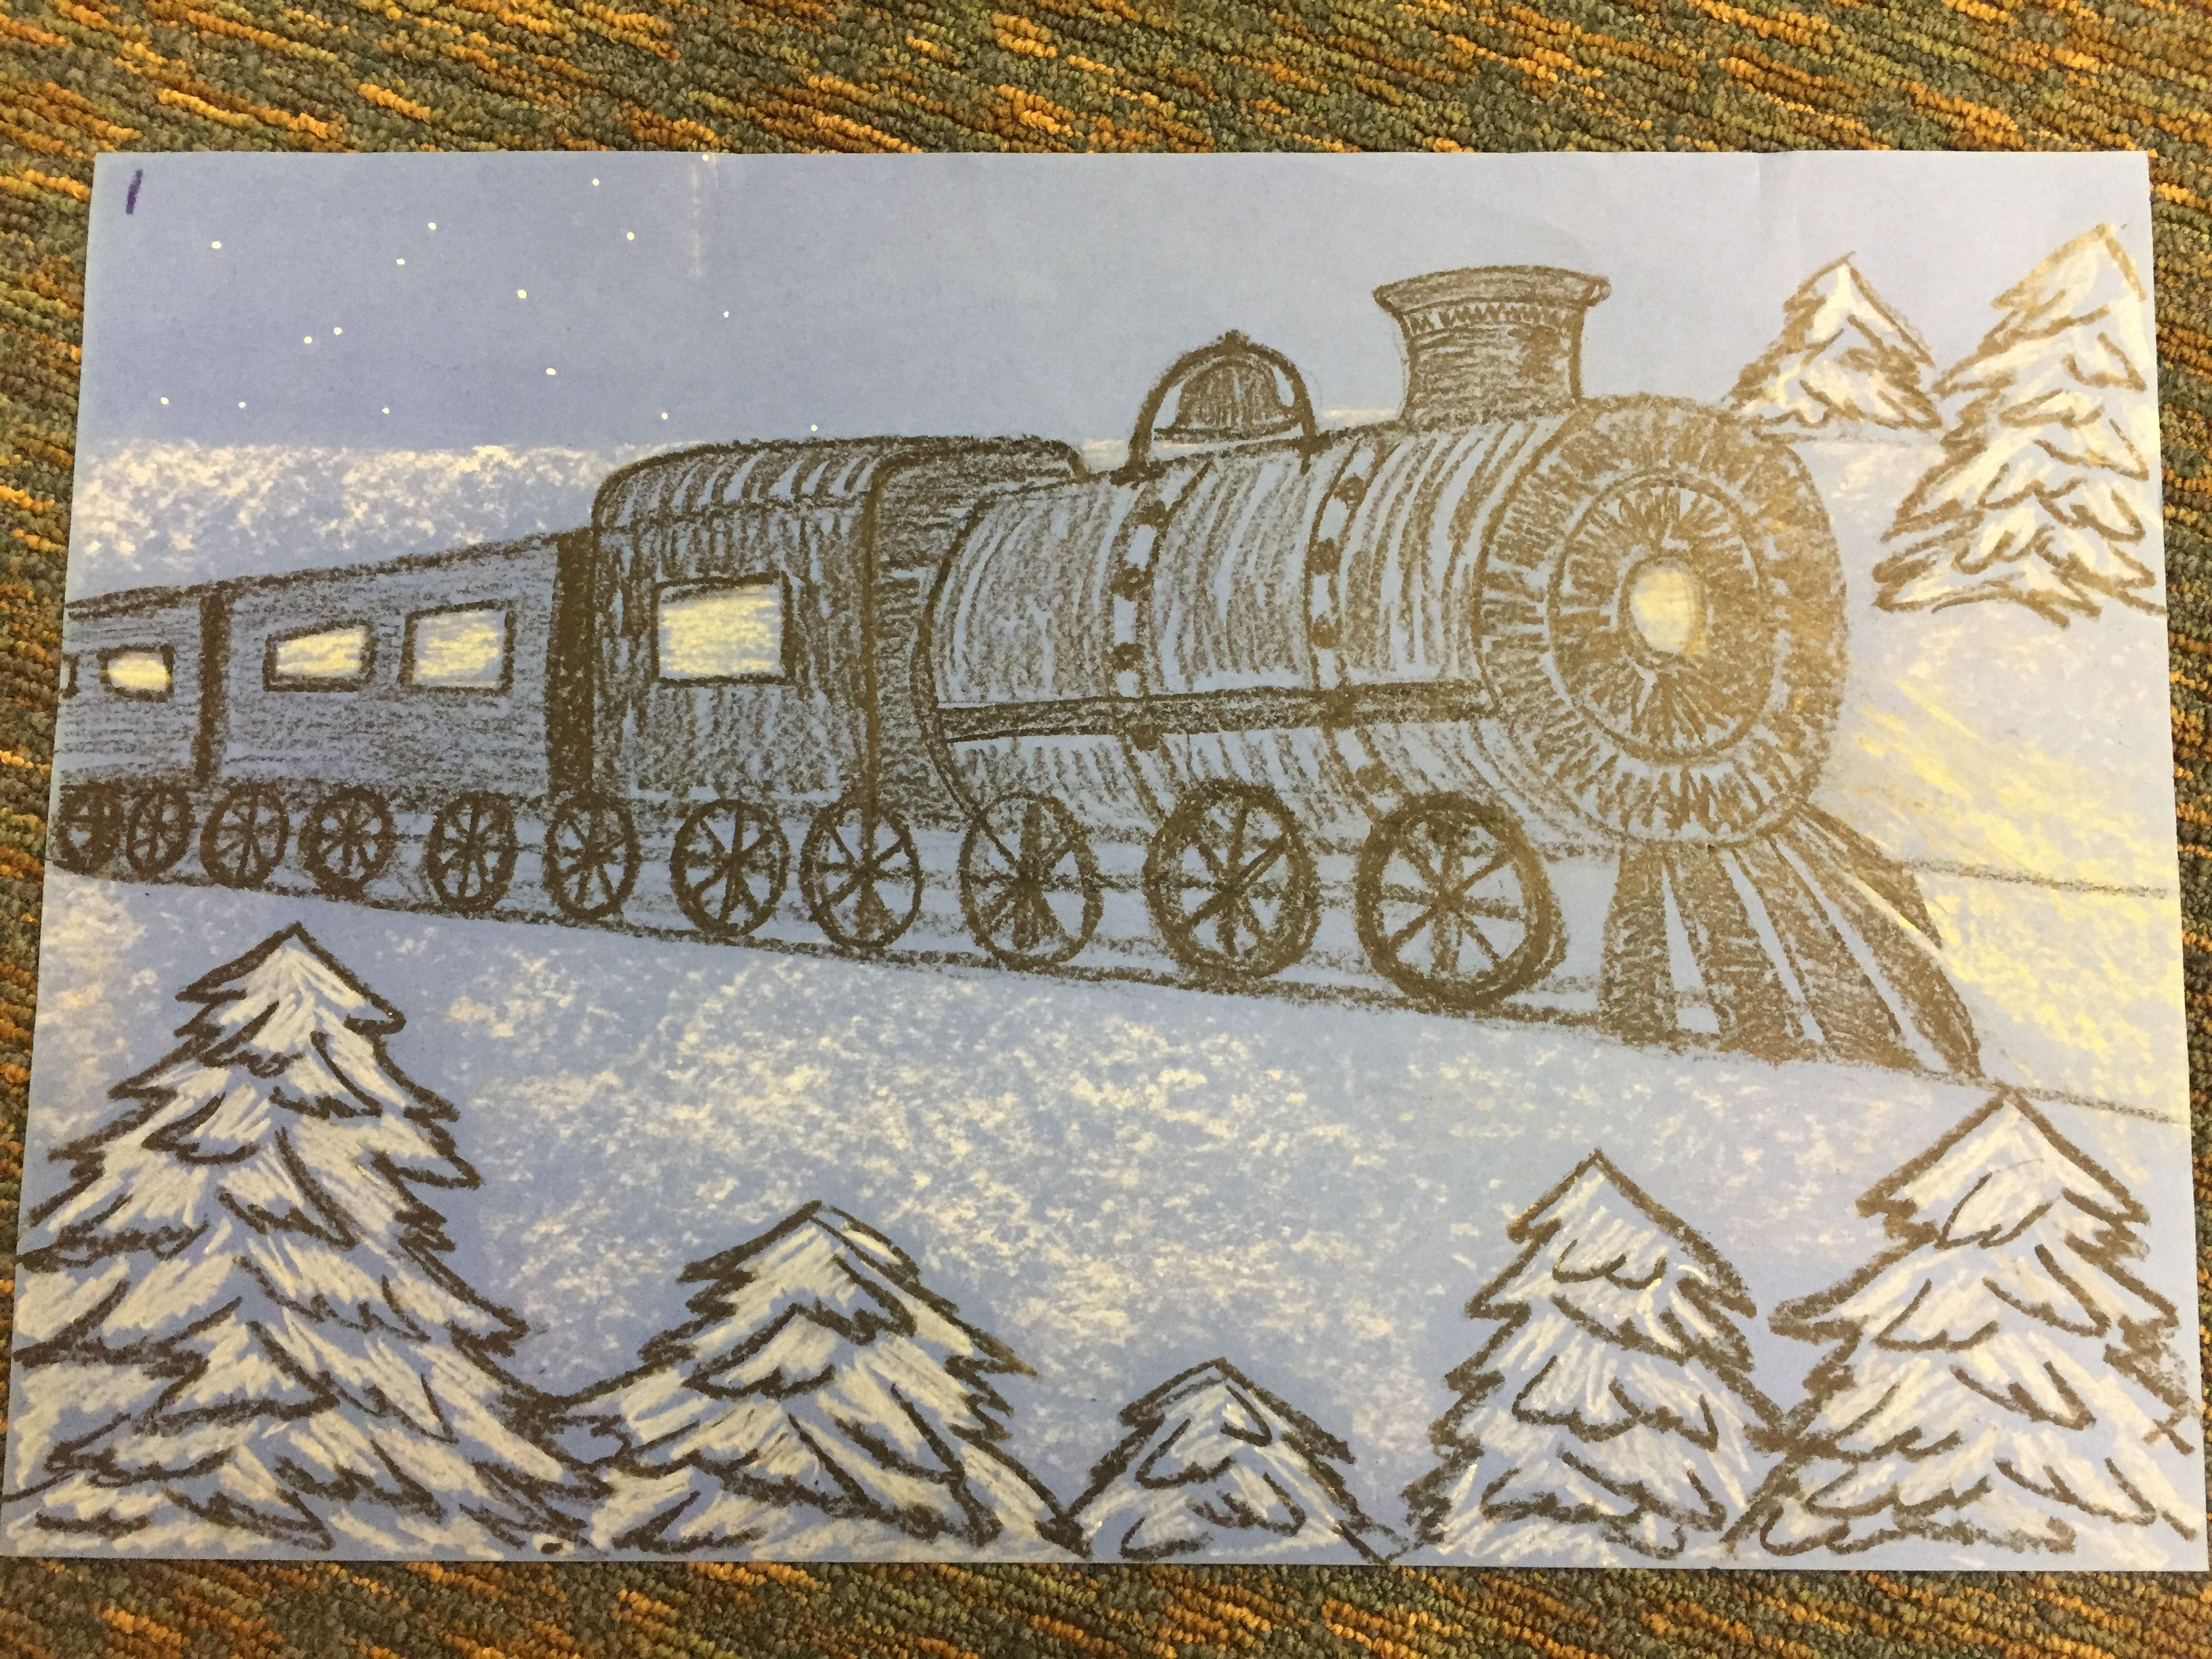 Read The Polar Express By Chris Van Allsburg And Have